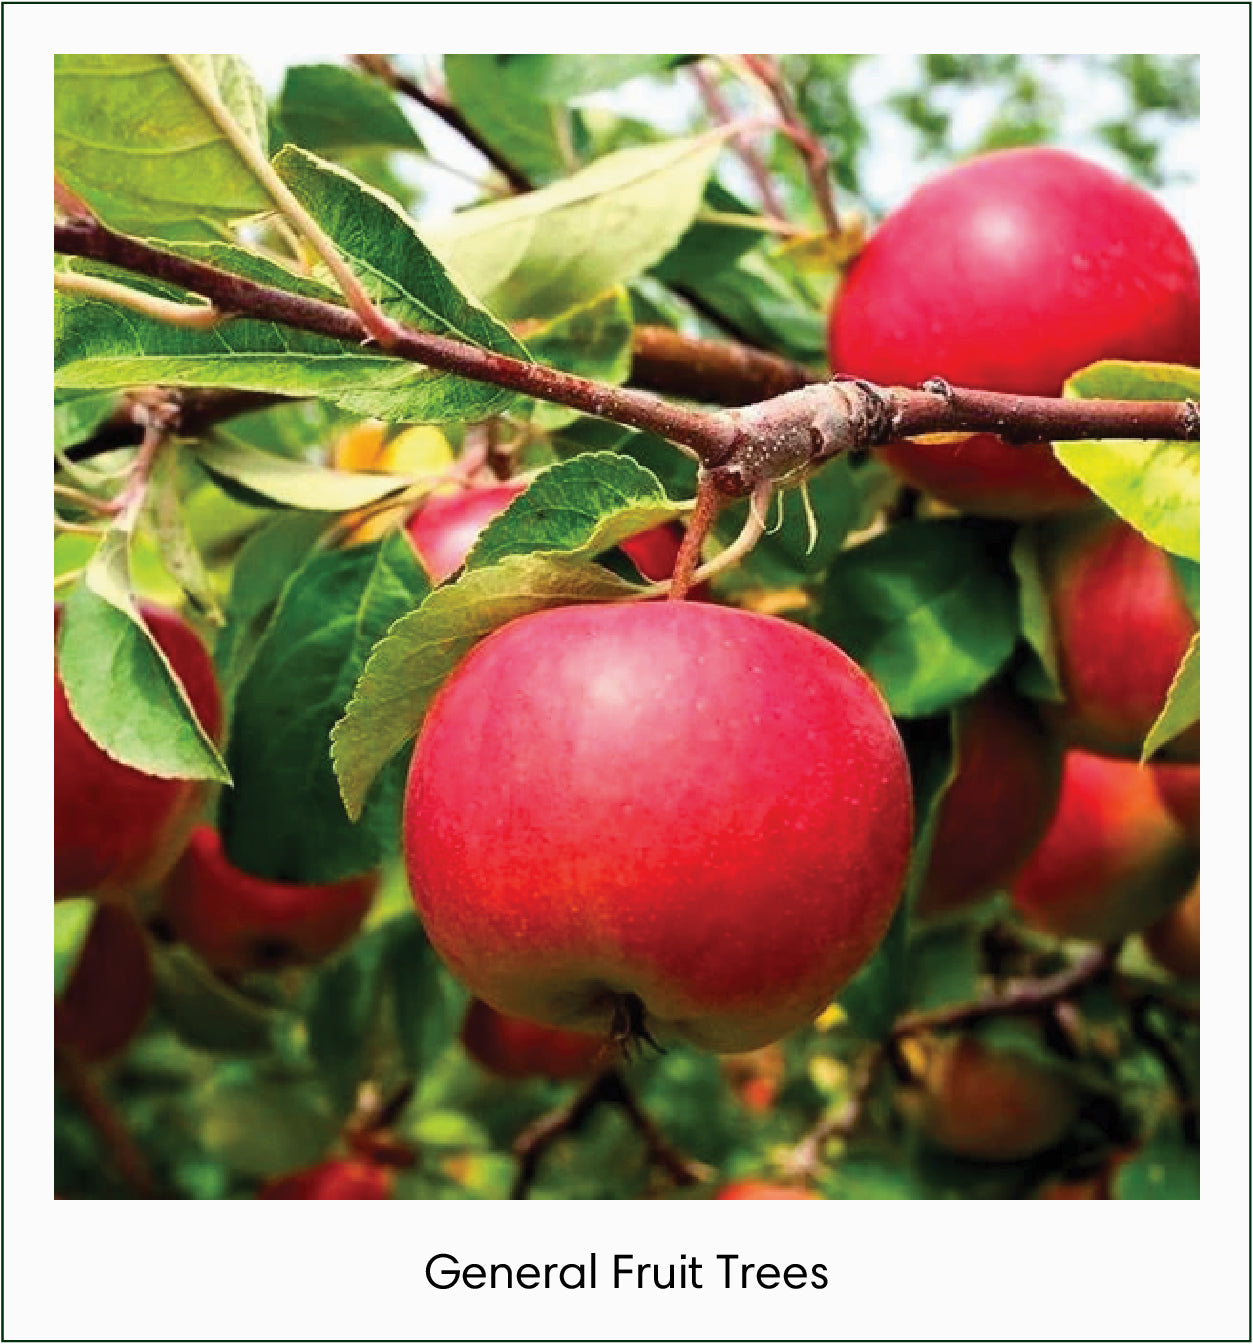 General Fruit Trees